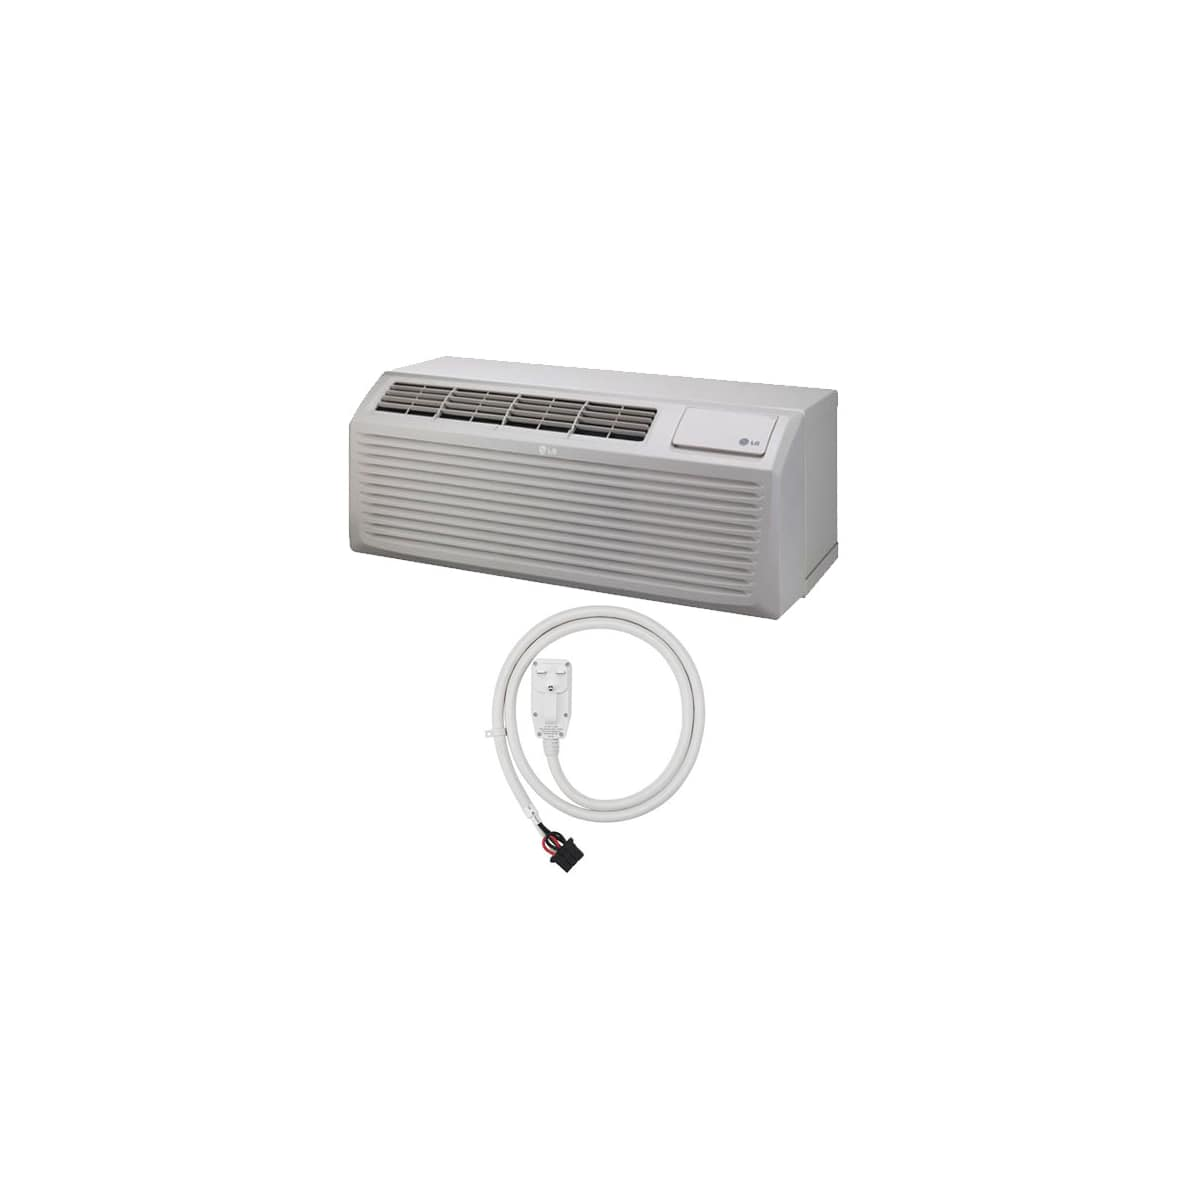 LG PTAC Air Conditioners